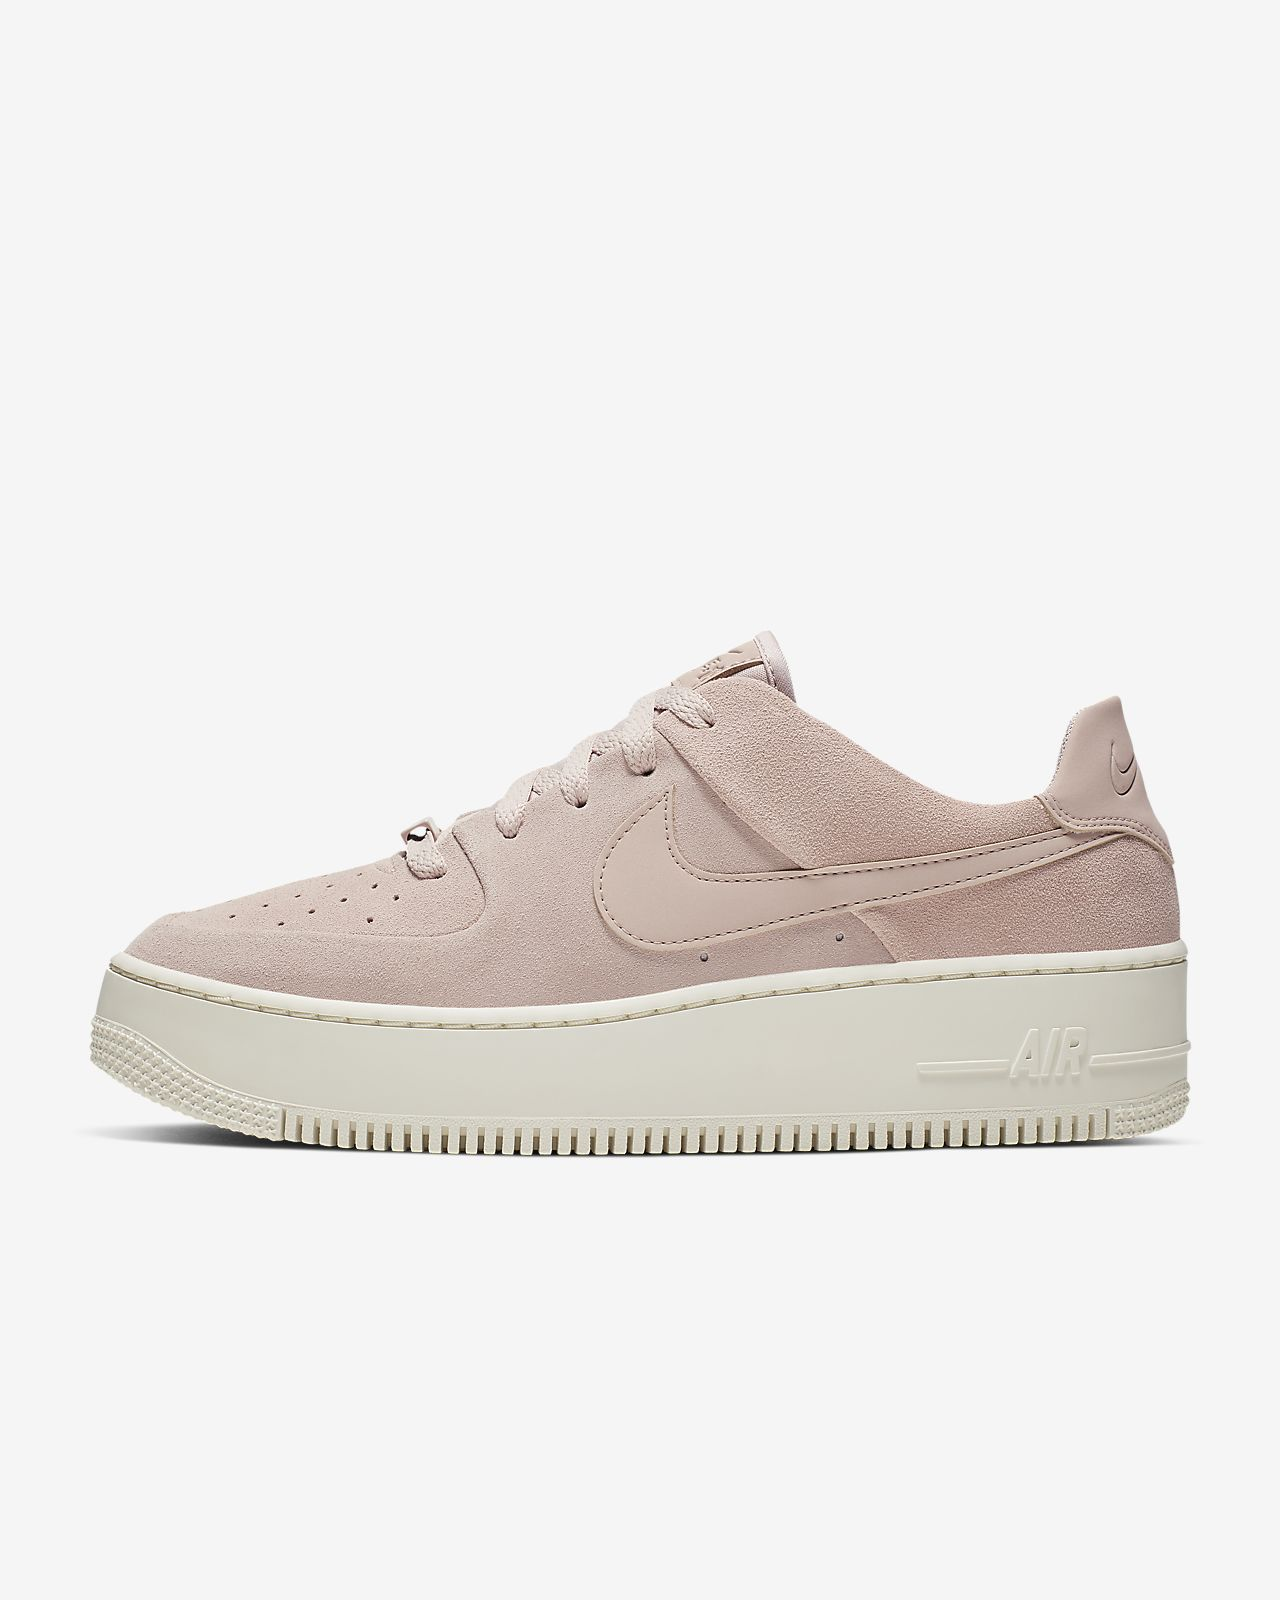 quality design 9b17e 0dab4 ... Nike Air Force 1 Sage Low Womens Shoe